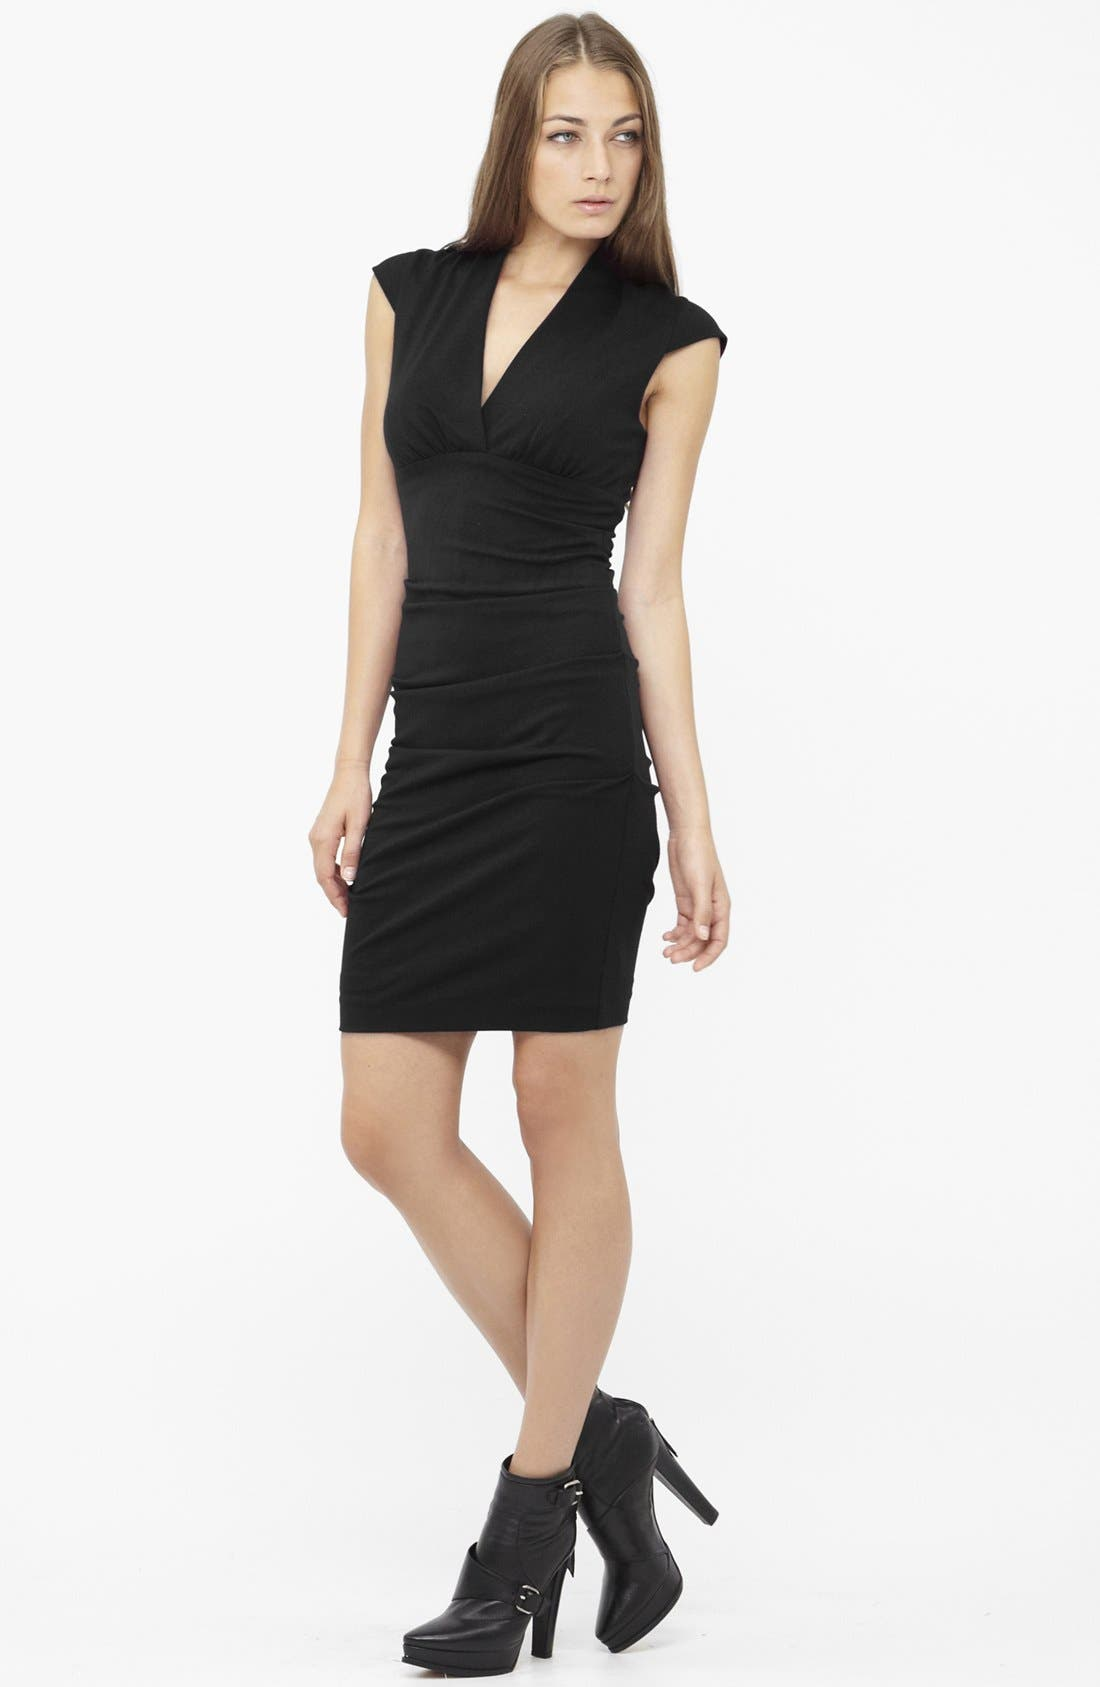 Alternate Image 1 Selected - Nicole Miller Ruched Cap Sleeve Knit Sheath Dress